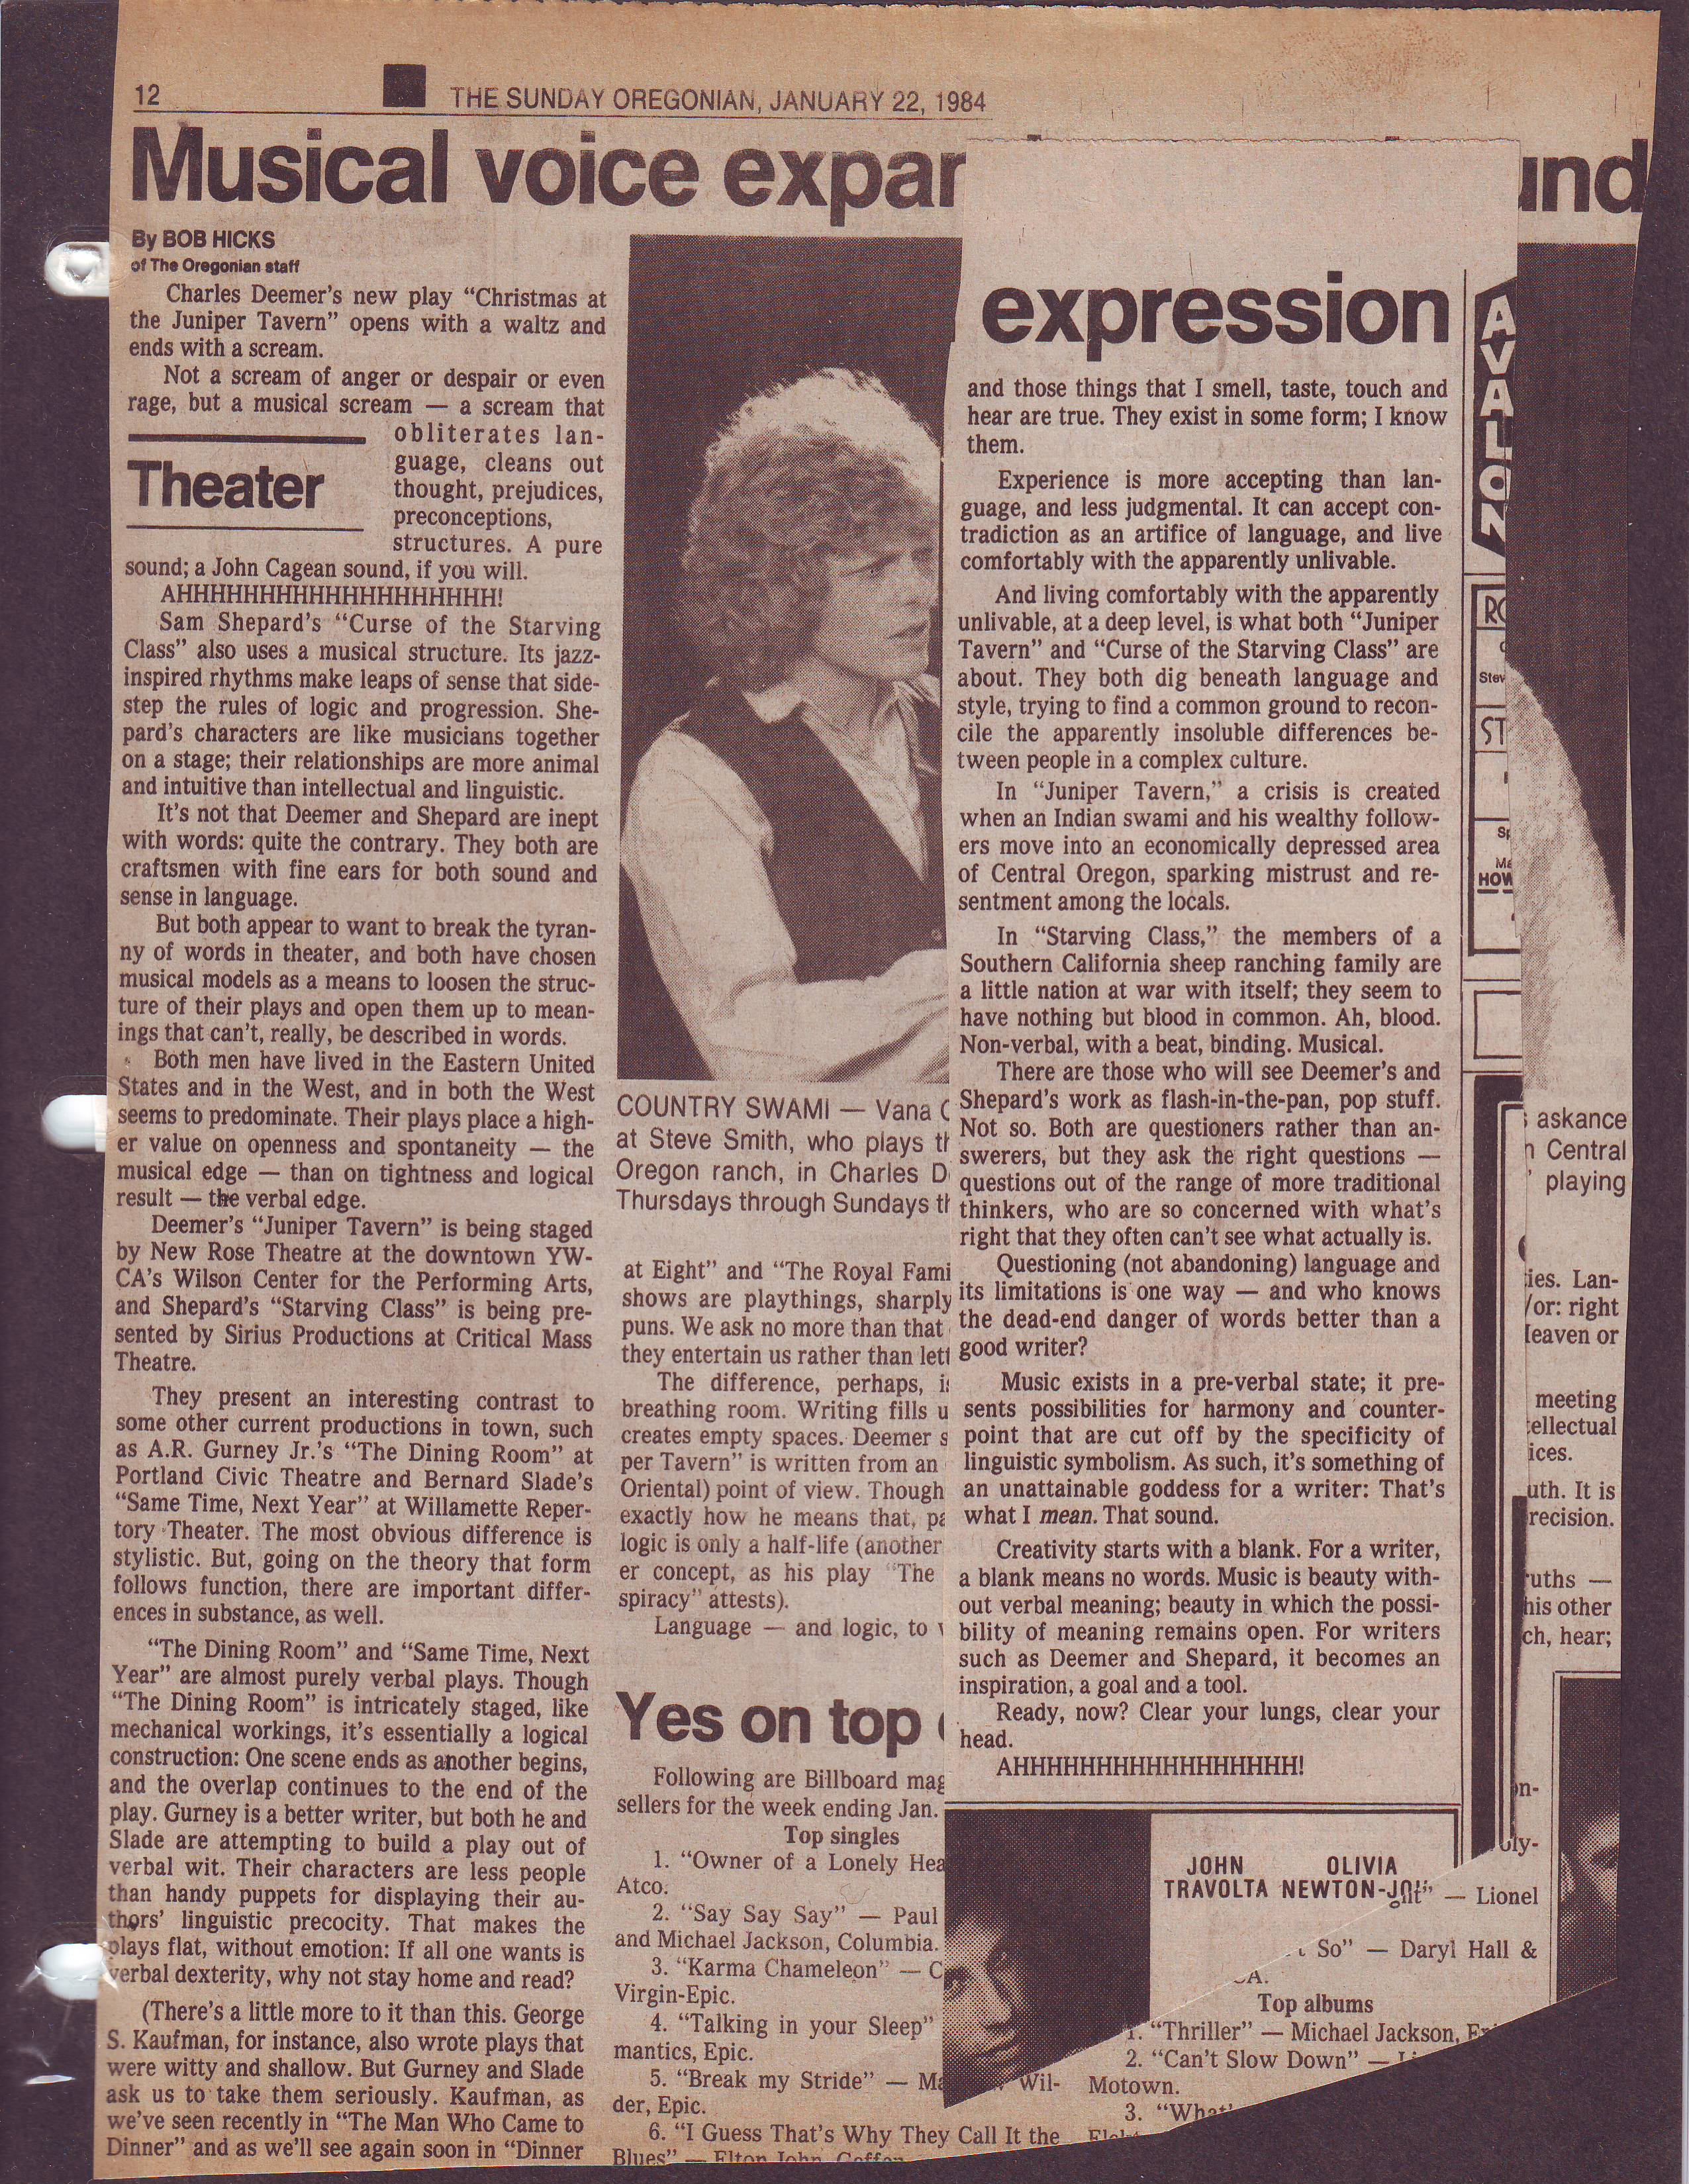 How to scrapbook with newspaper articles - Article